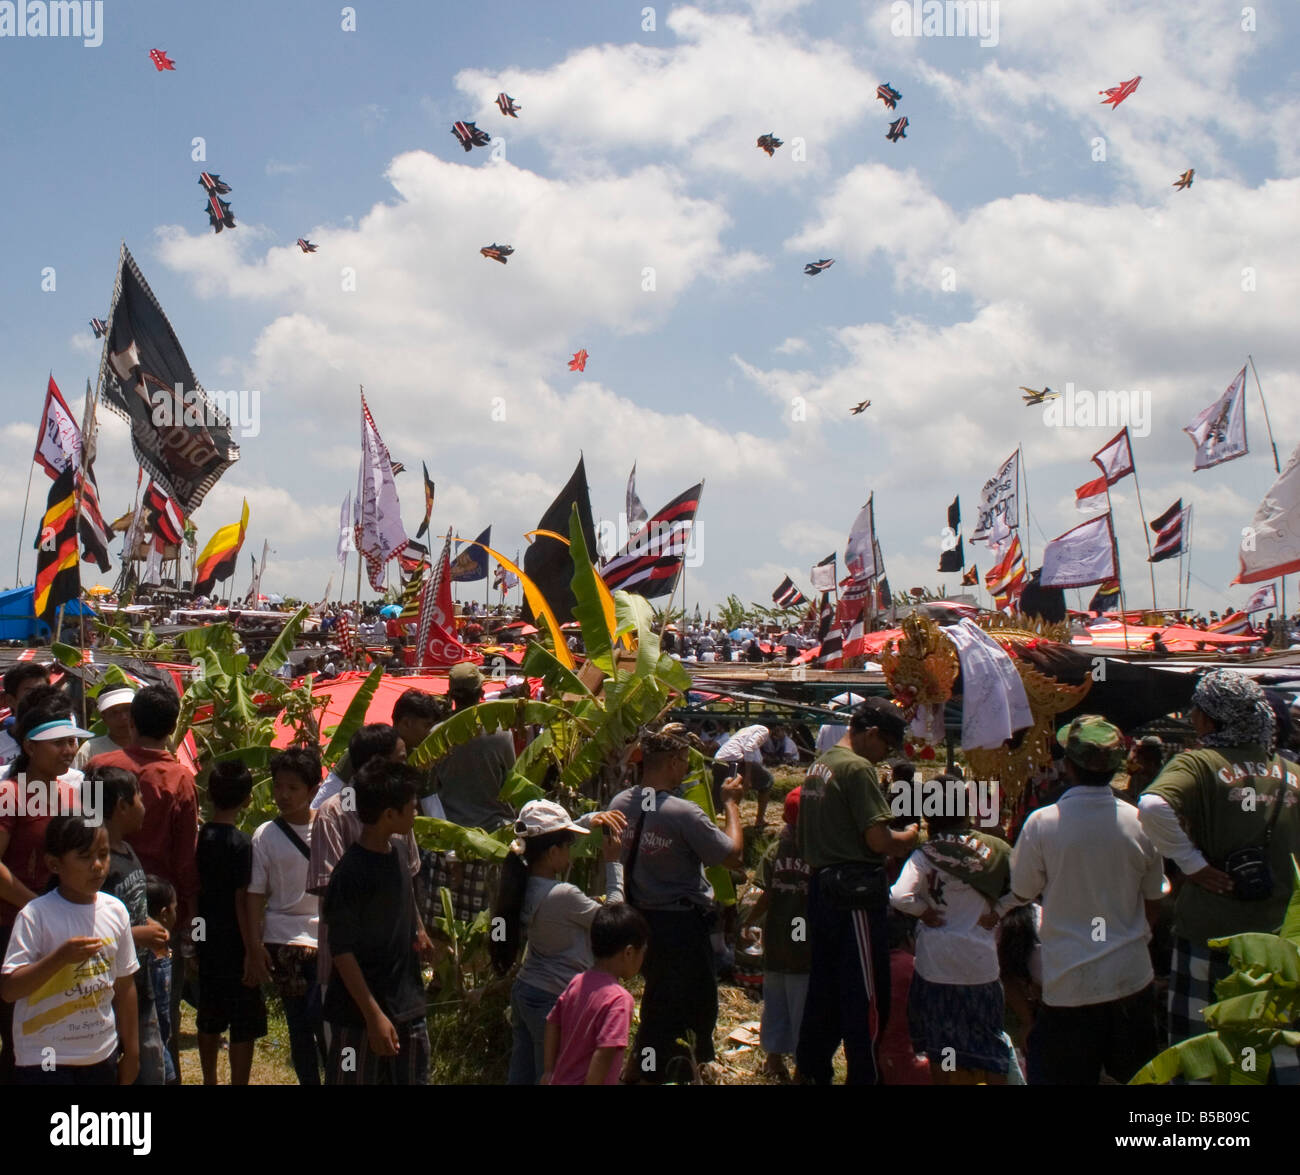 Balinese villagers flying their kites at the annual Layang-Layang kite festival in Tanah Lot Bali, Indonesia - Stock Image